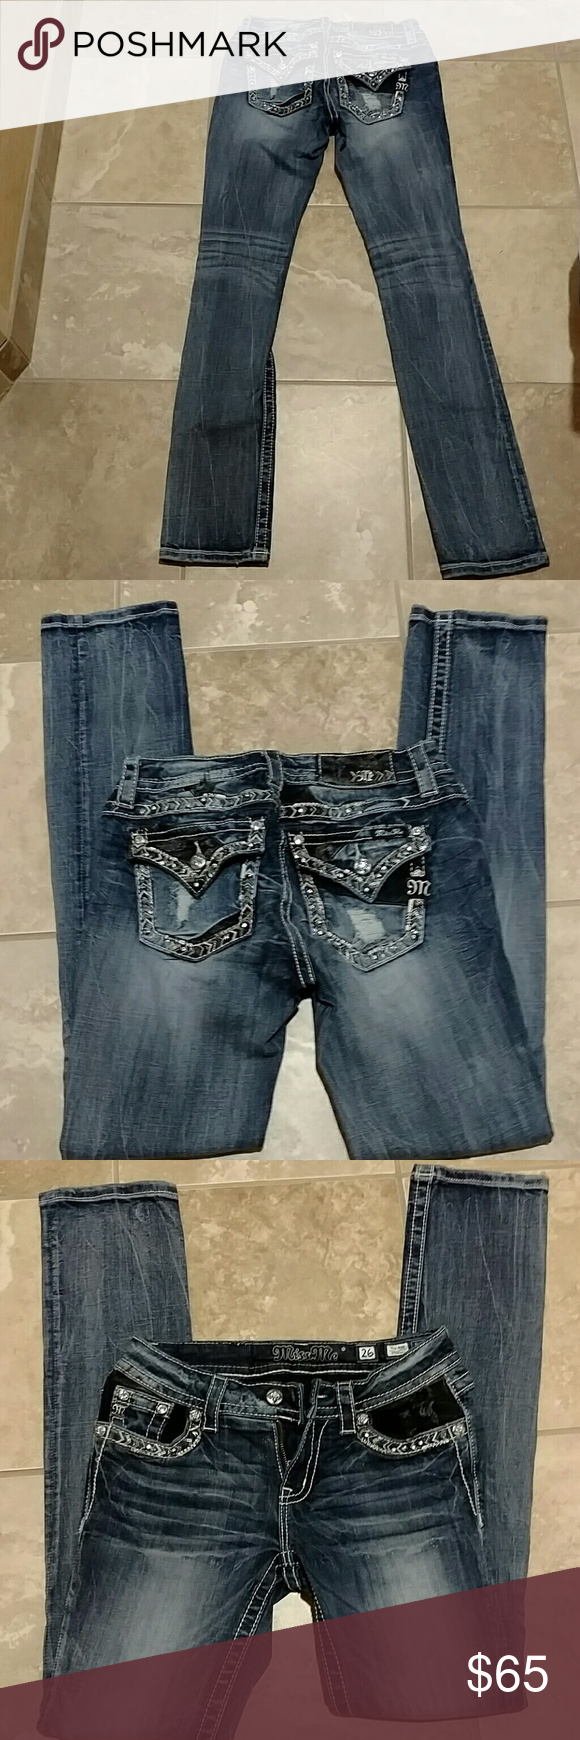 Miss me jeans Beautiful blue miss mes with bling and black patches. Super cute!!! Size 26, mid rise straight jeans. Inseam is 33 inches, rise is 7.5 inches and waist flat measures 14.5 inches 98% cotton 2% elastane Miss Me Jeans Straight Leg